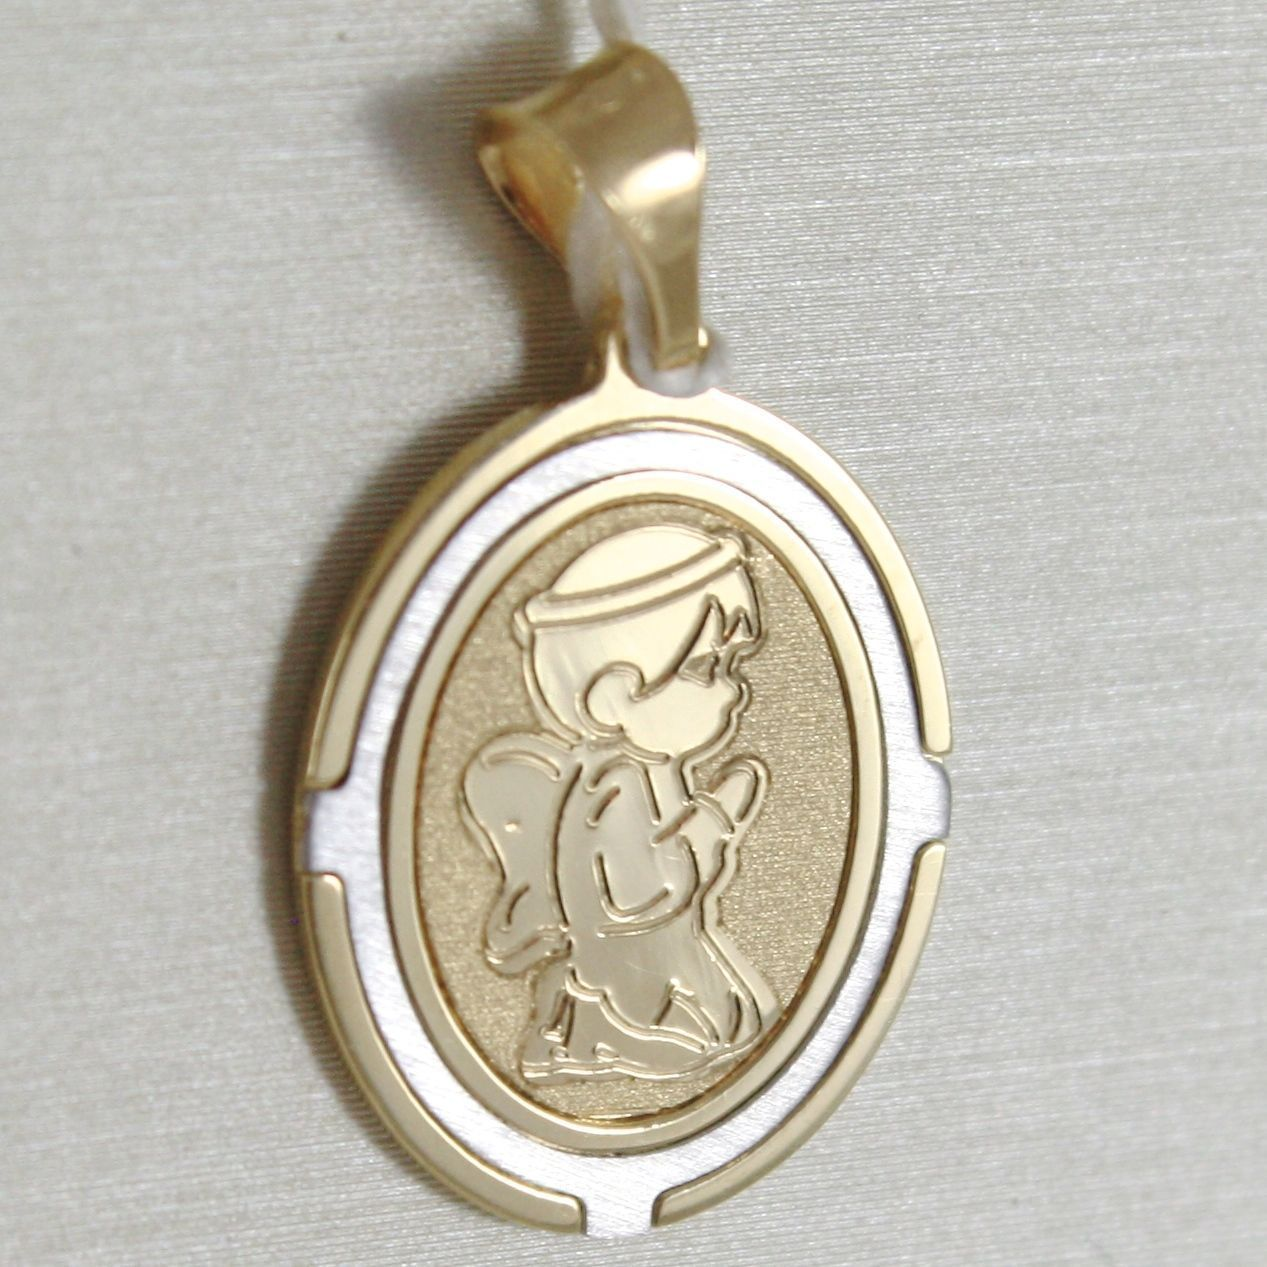 18K WHITE AND YELLOW GOLD MEDAL OVAL STYLIZED WITH GUARDIAN ANGEL MADE IN ITALY